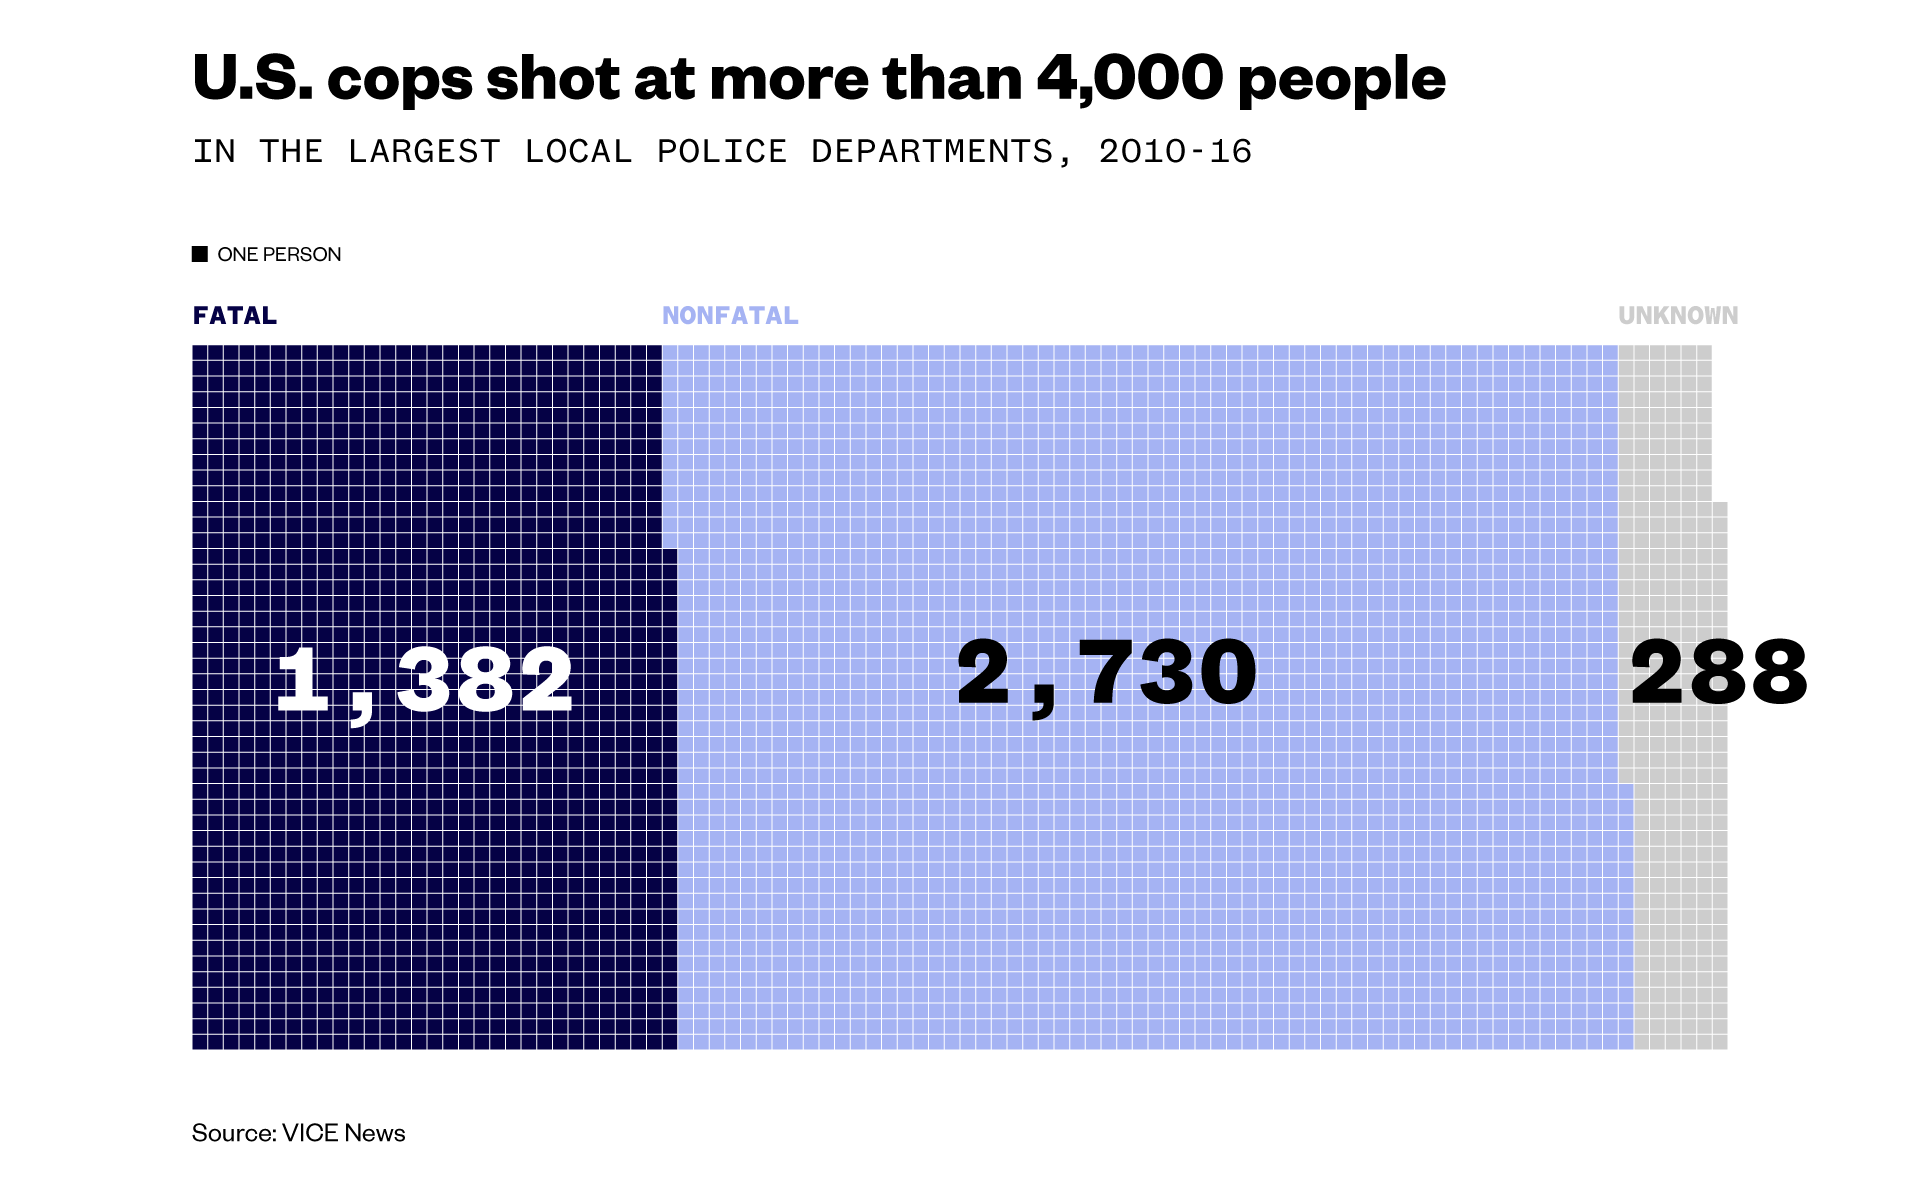 Police shoot far more people than anyone realized a VICE News